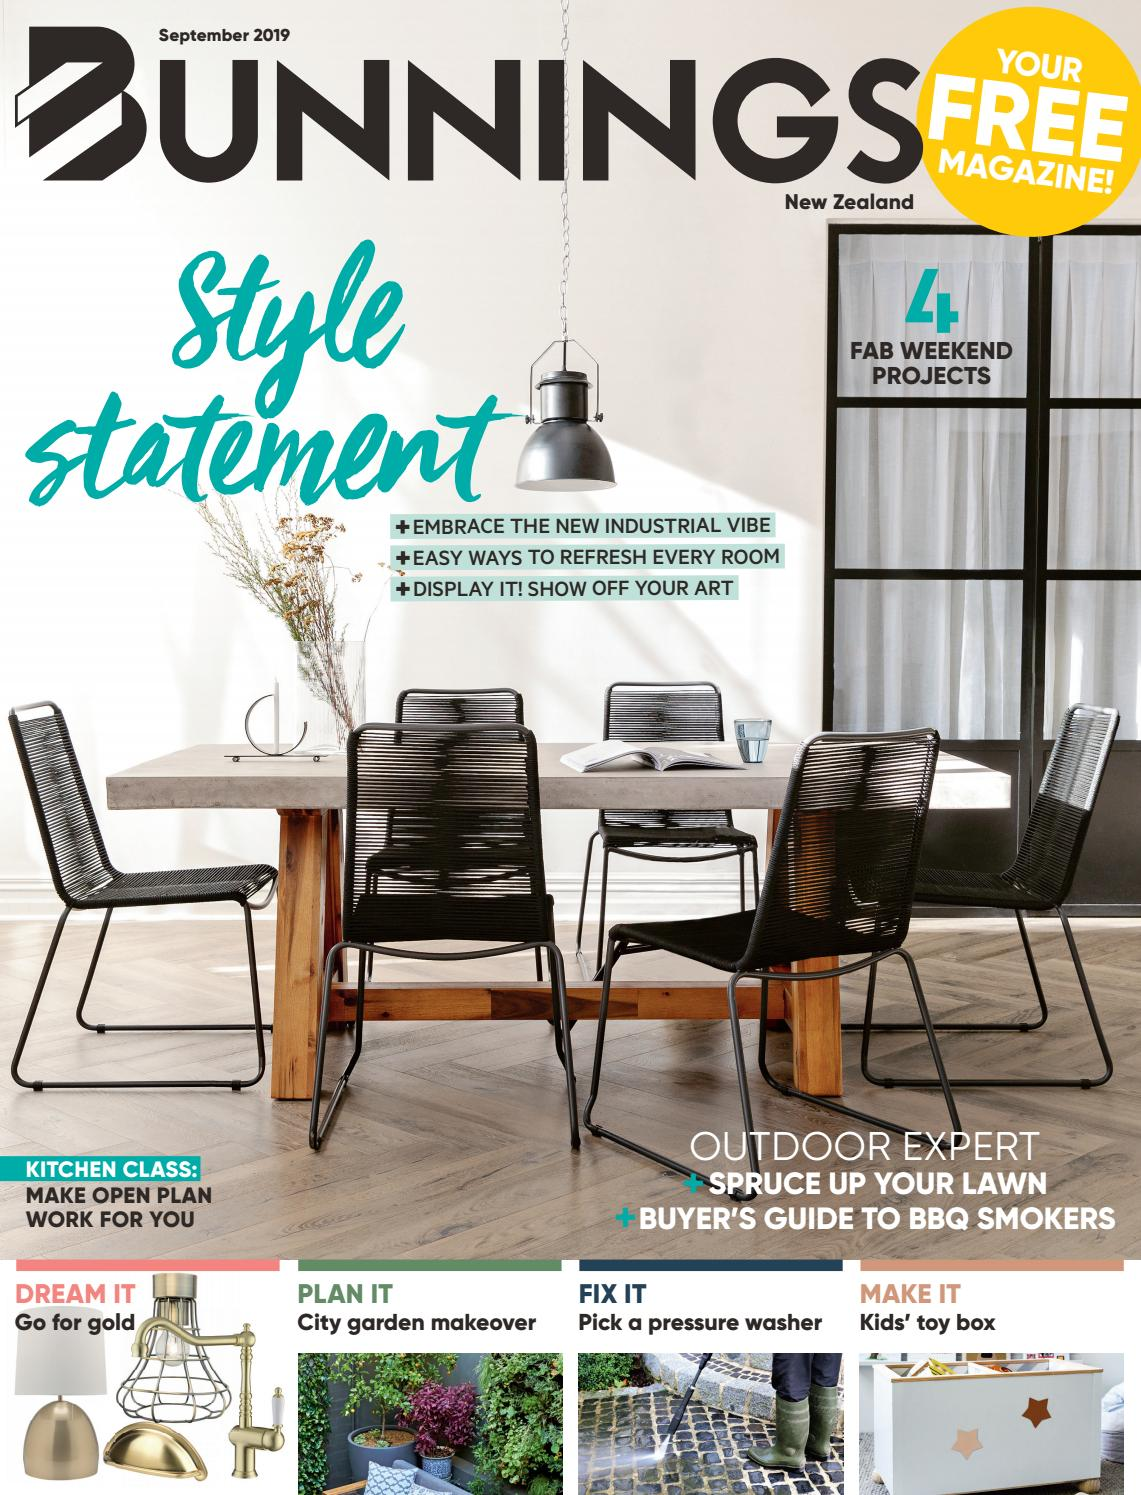 Picture of: Bunnings Magazine Nz September 2019 By Bunnings Issuu